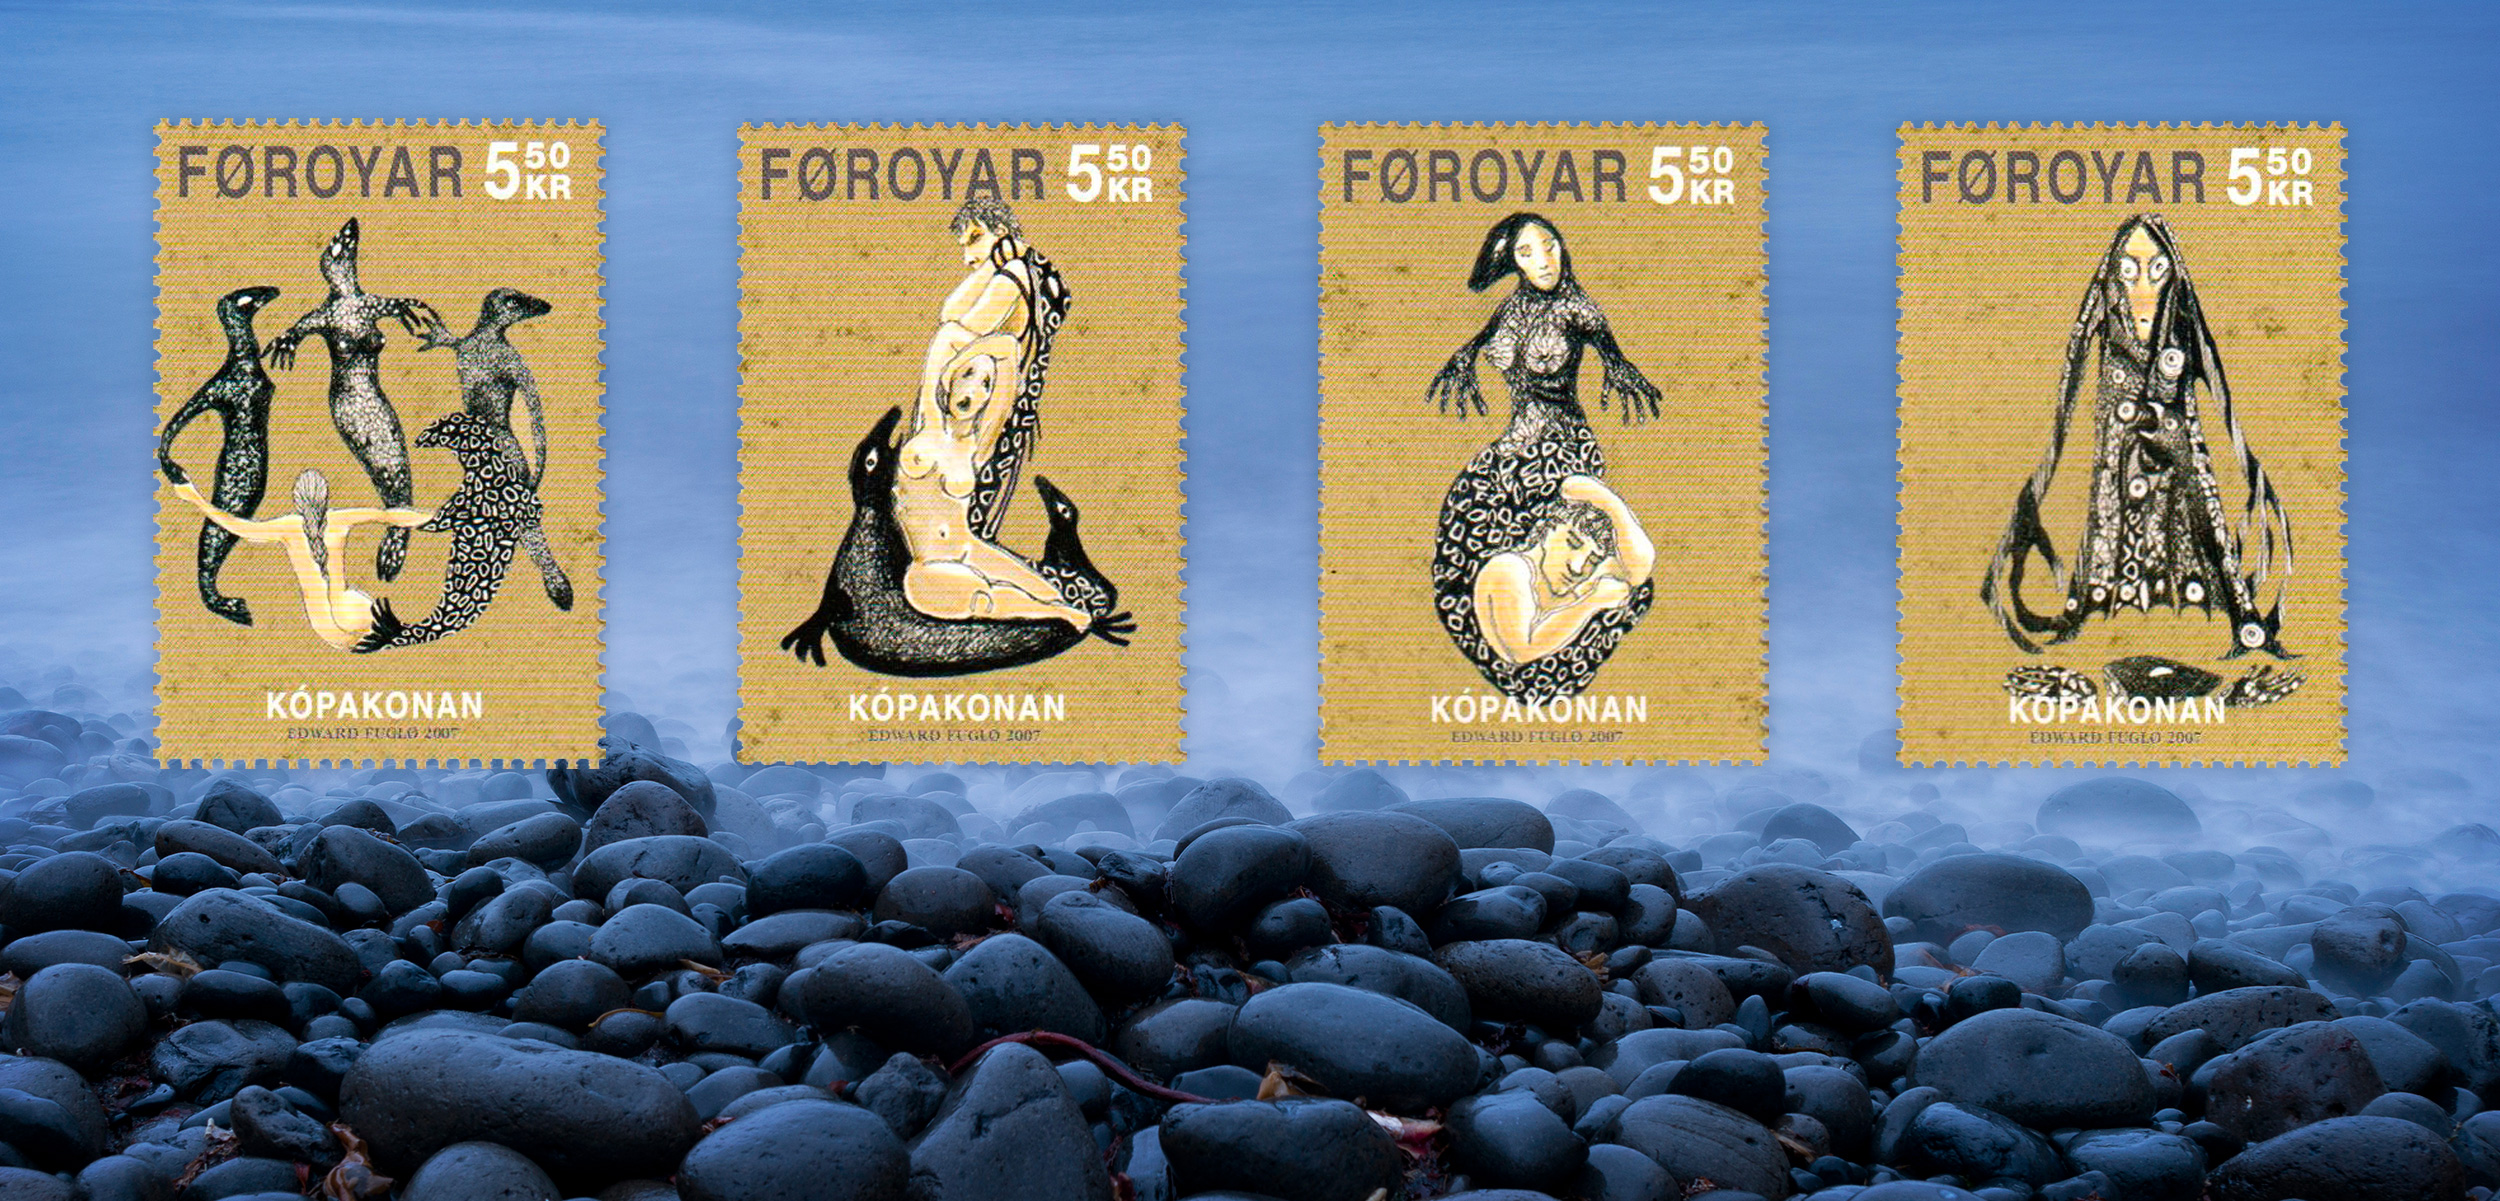 The story of Seal Woman, a Selkie, comes from the Faroe Islands, an archipelago that is part of the Kingdom of Denmark. Artist Edward Fuglø designed a series of 10 stamps, four of which are shown here. Background photo by Olaf Krüger/imagebroker/Corbis